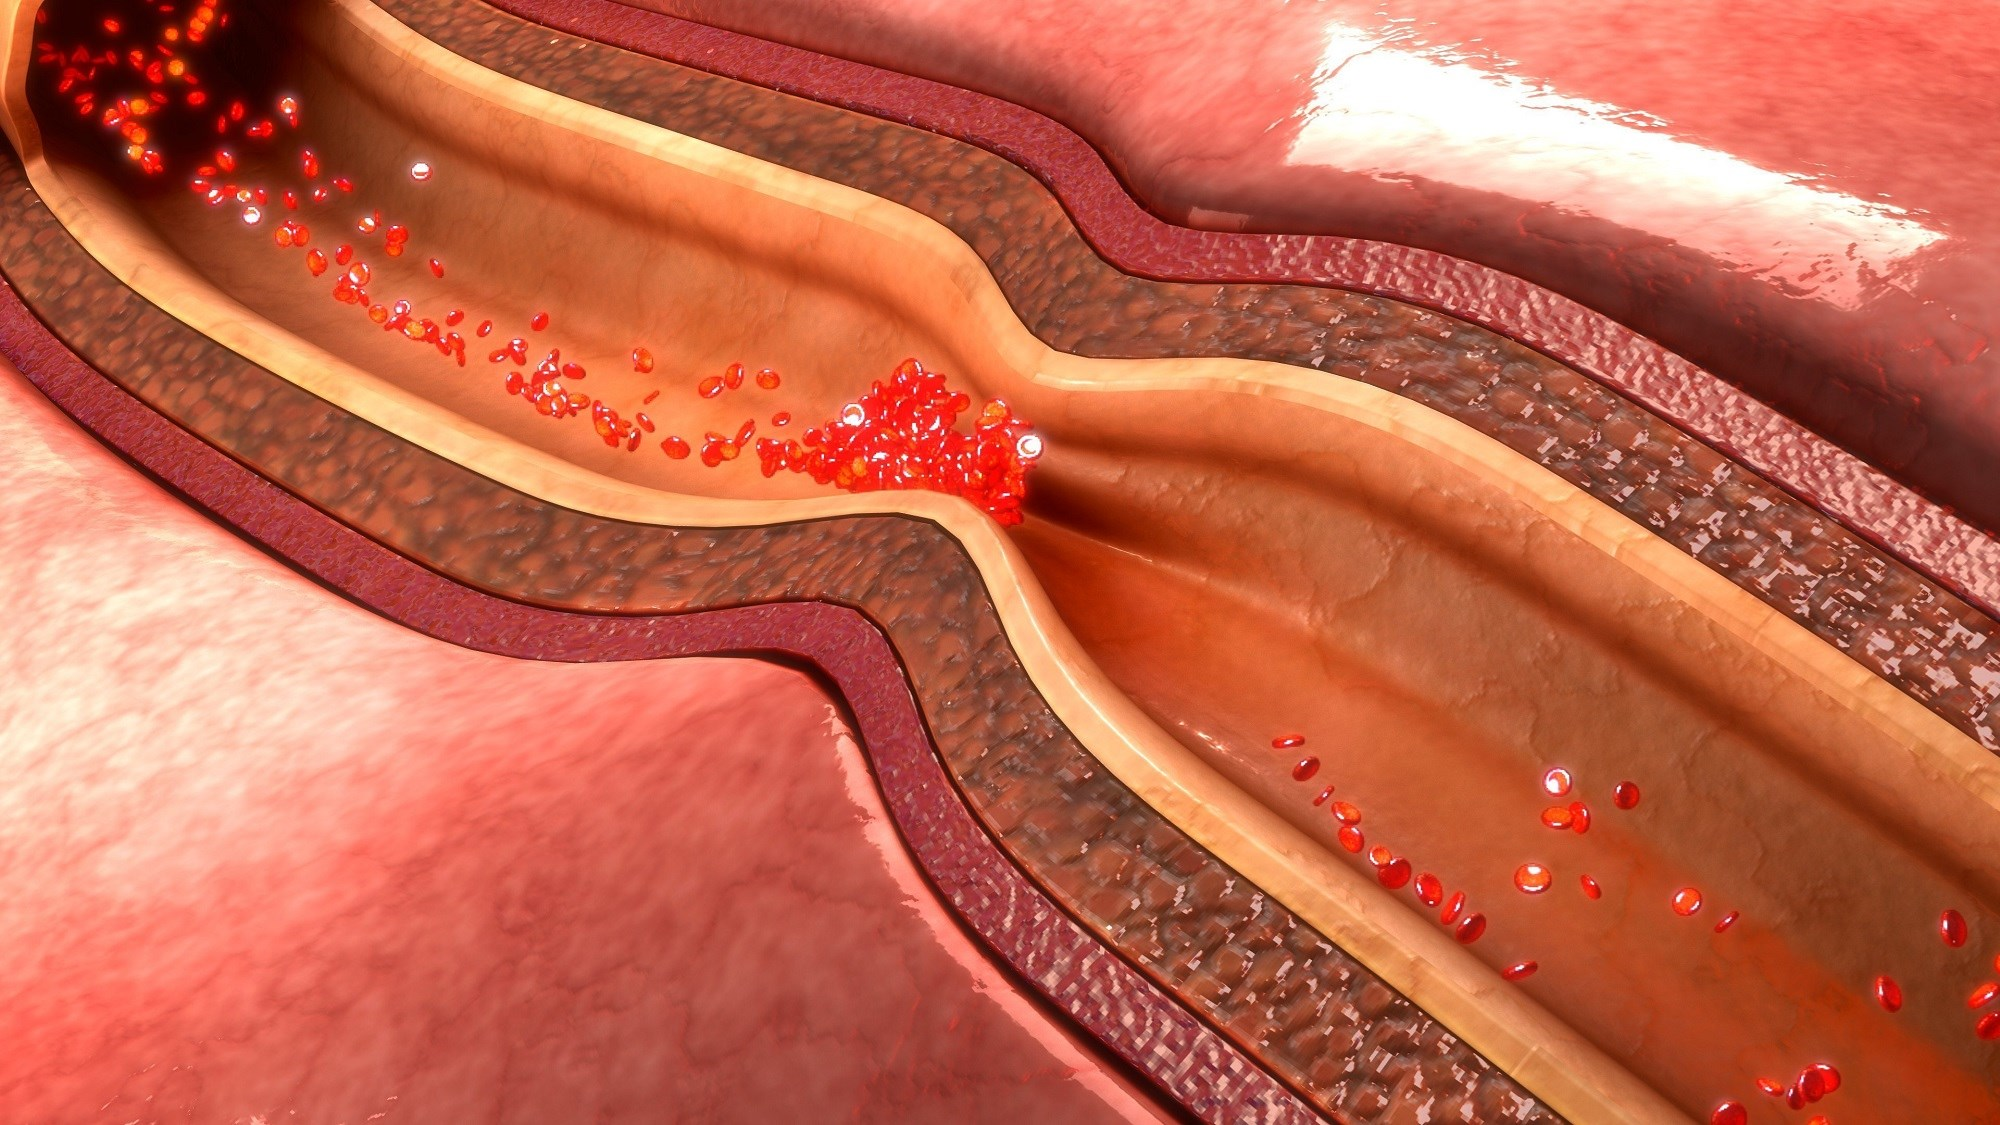 Impaired Microvascular Function Predictive of Adverse CV Outcomes in Women